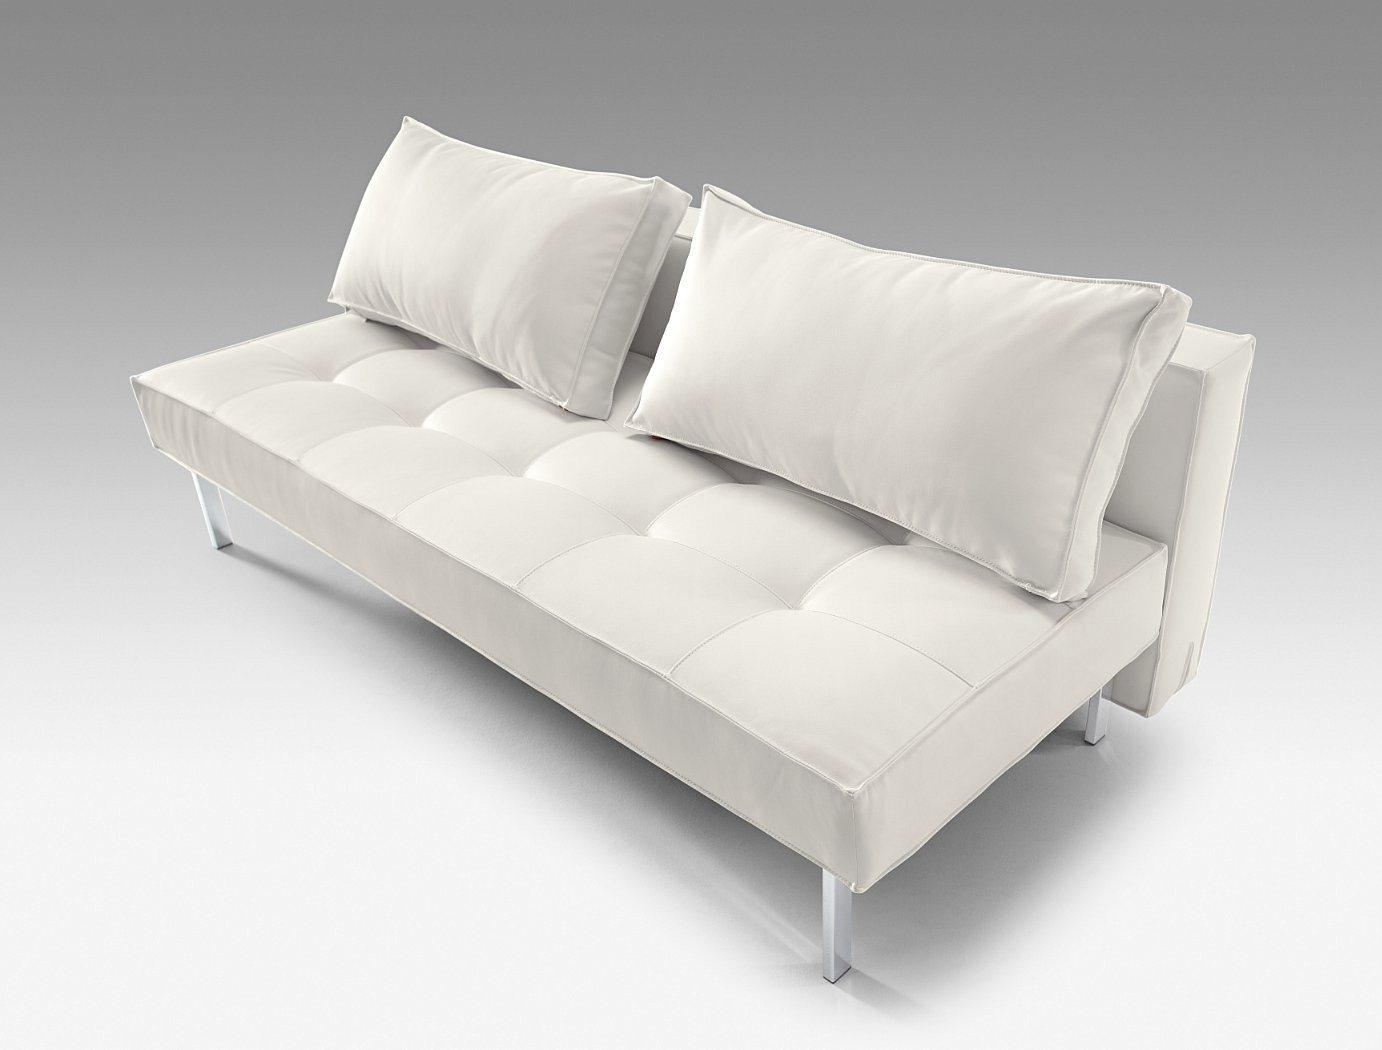 Euro Sofa Bed | Sofa Gallery | Kengire Regarding Euro Sofas (View 20 of 20)